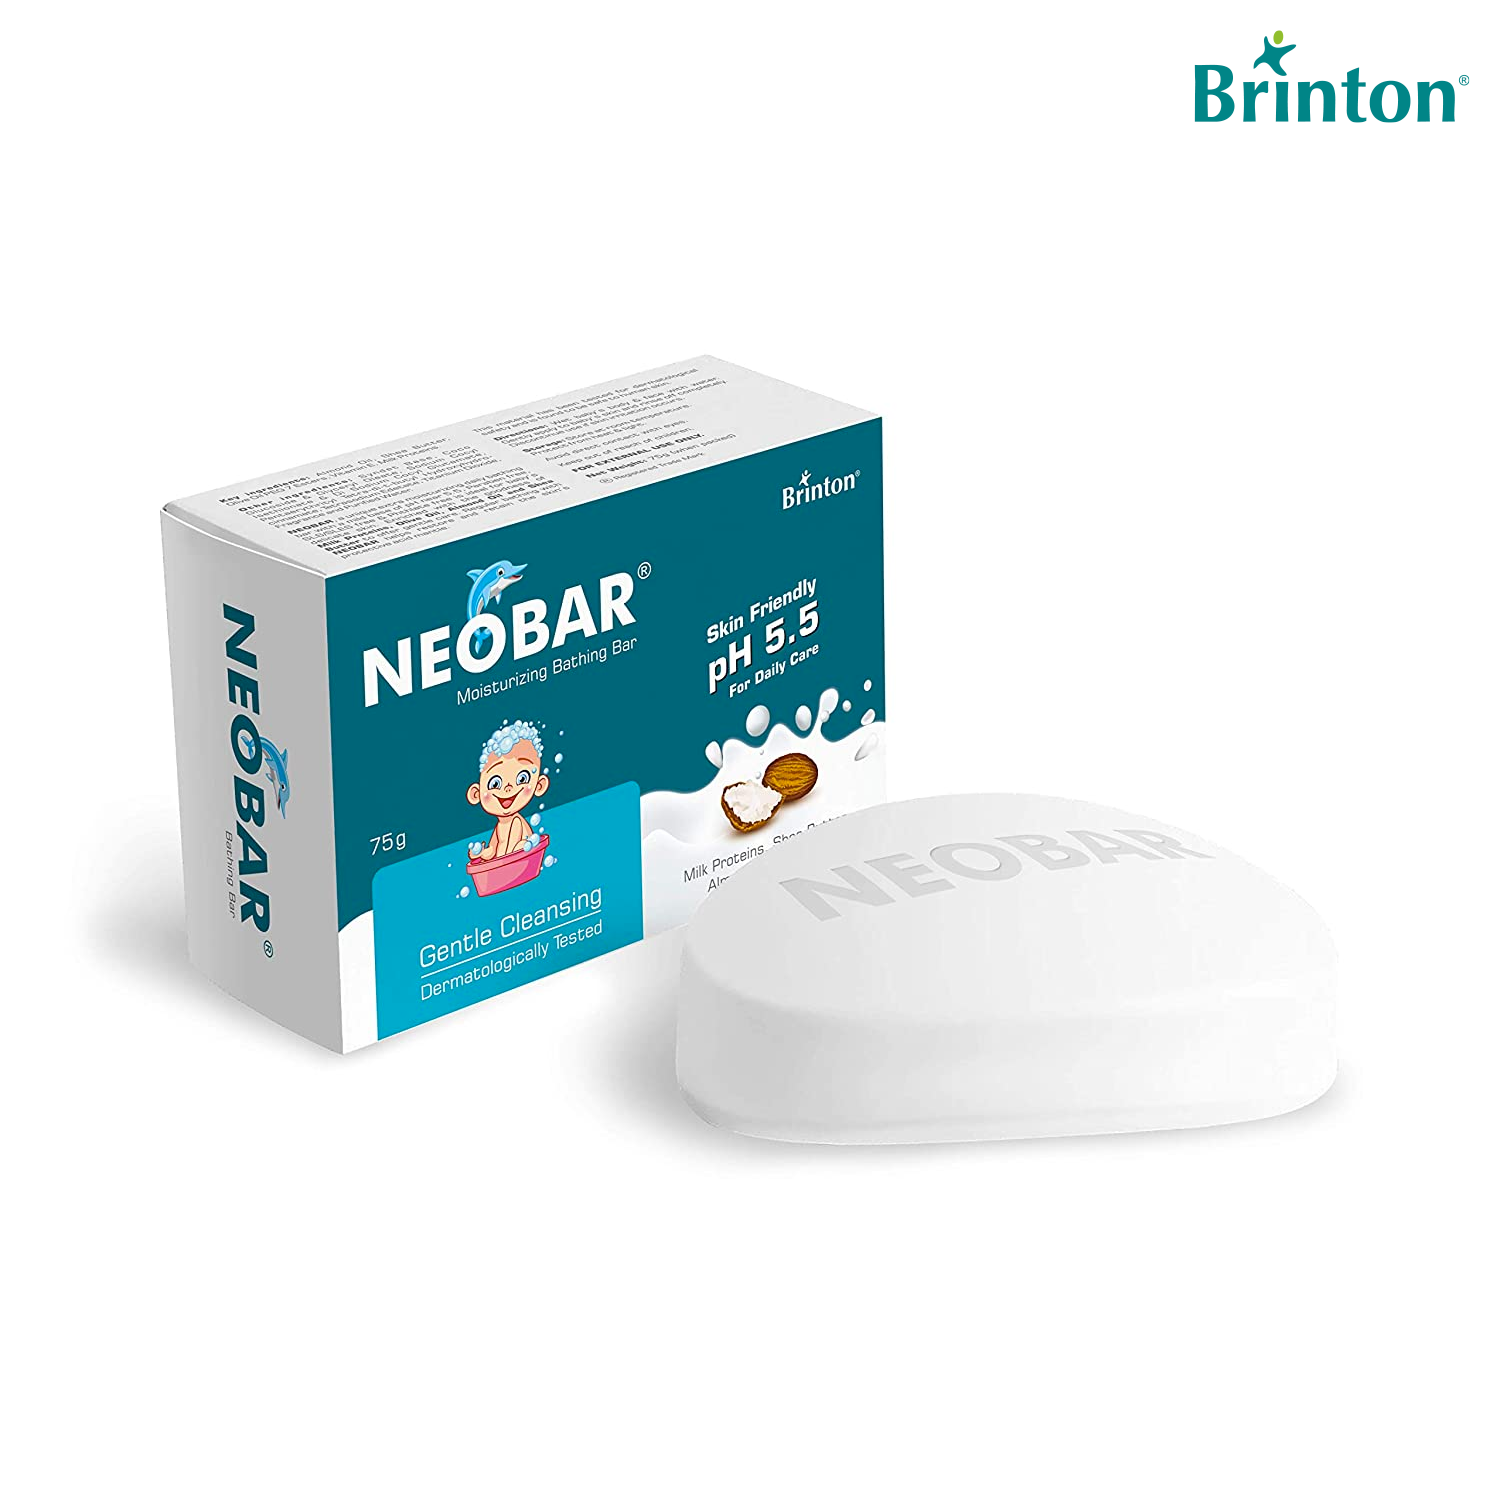 Brinton Neobar Baby Soap for Bathing, Moisturizing, Gentle Cleansing, Skin Friendly | Pack of 4 | Daily Care | pH 5.5